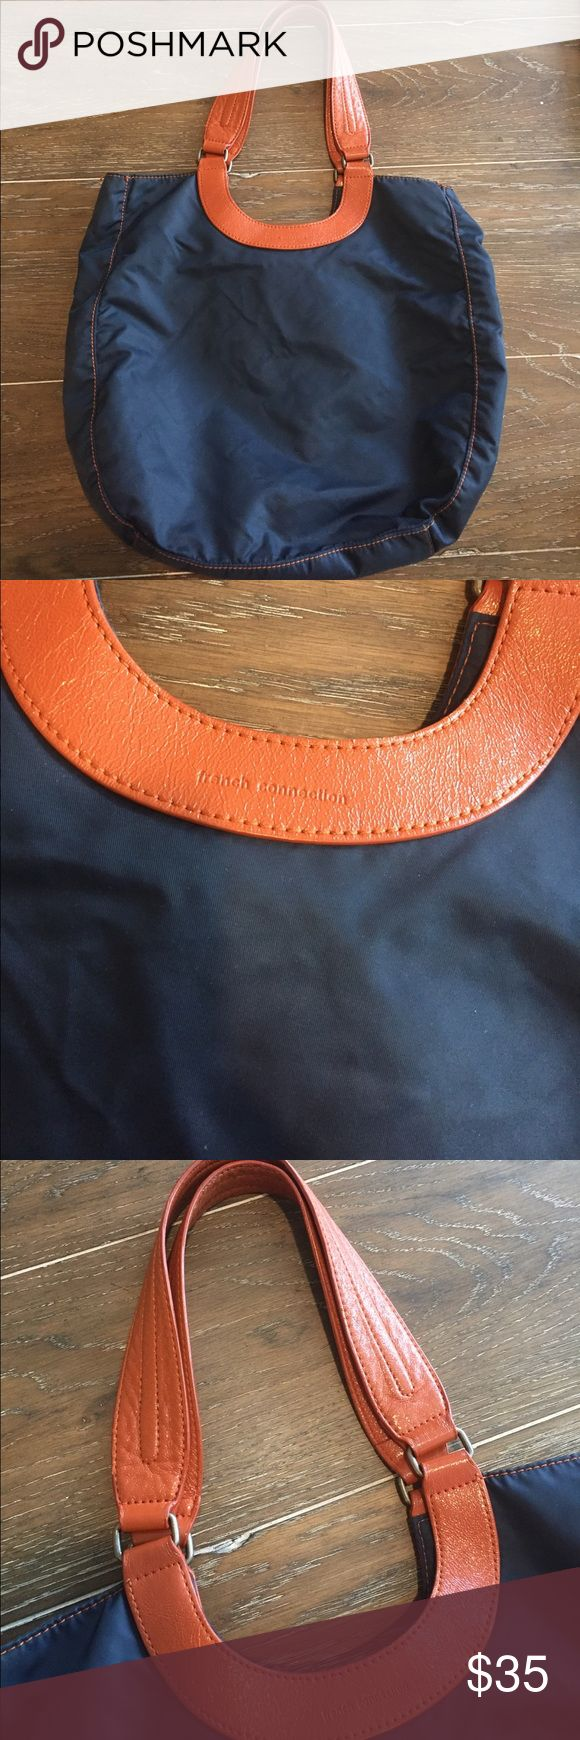 French Connection Nylon Snap Purse Excellent used condition!! This purse is the perfect daytime purse and can fit all your accessories. Navy Blue purse with brownish handles. Zipper pocket inside. French Connection Bags Shoulder Bags